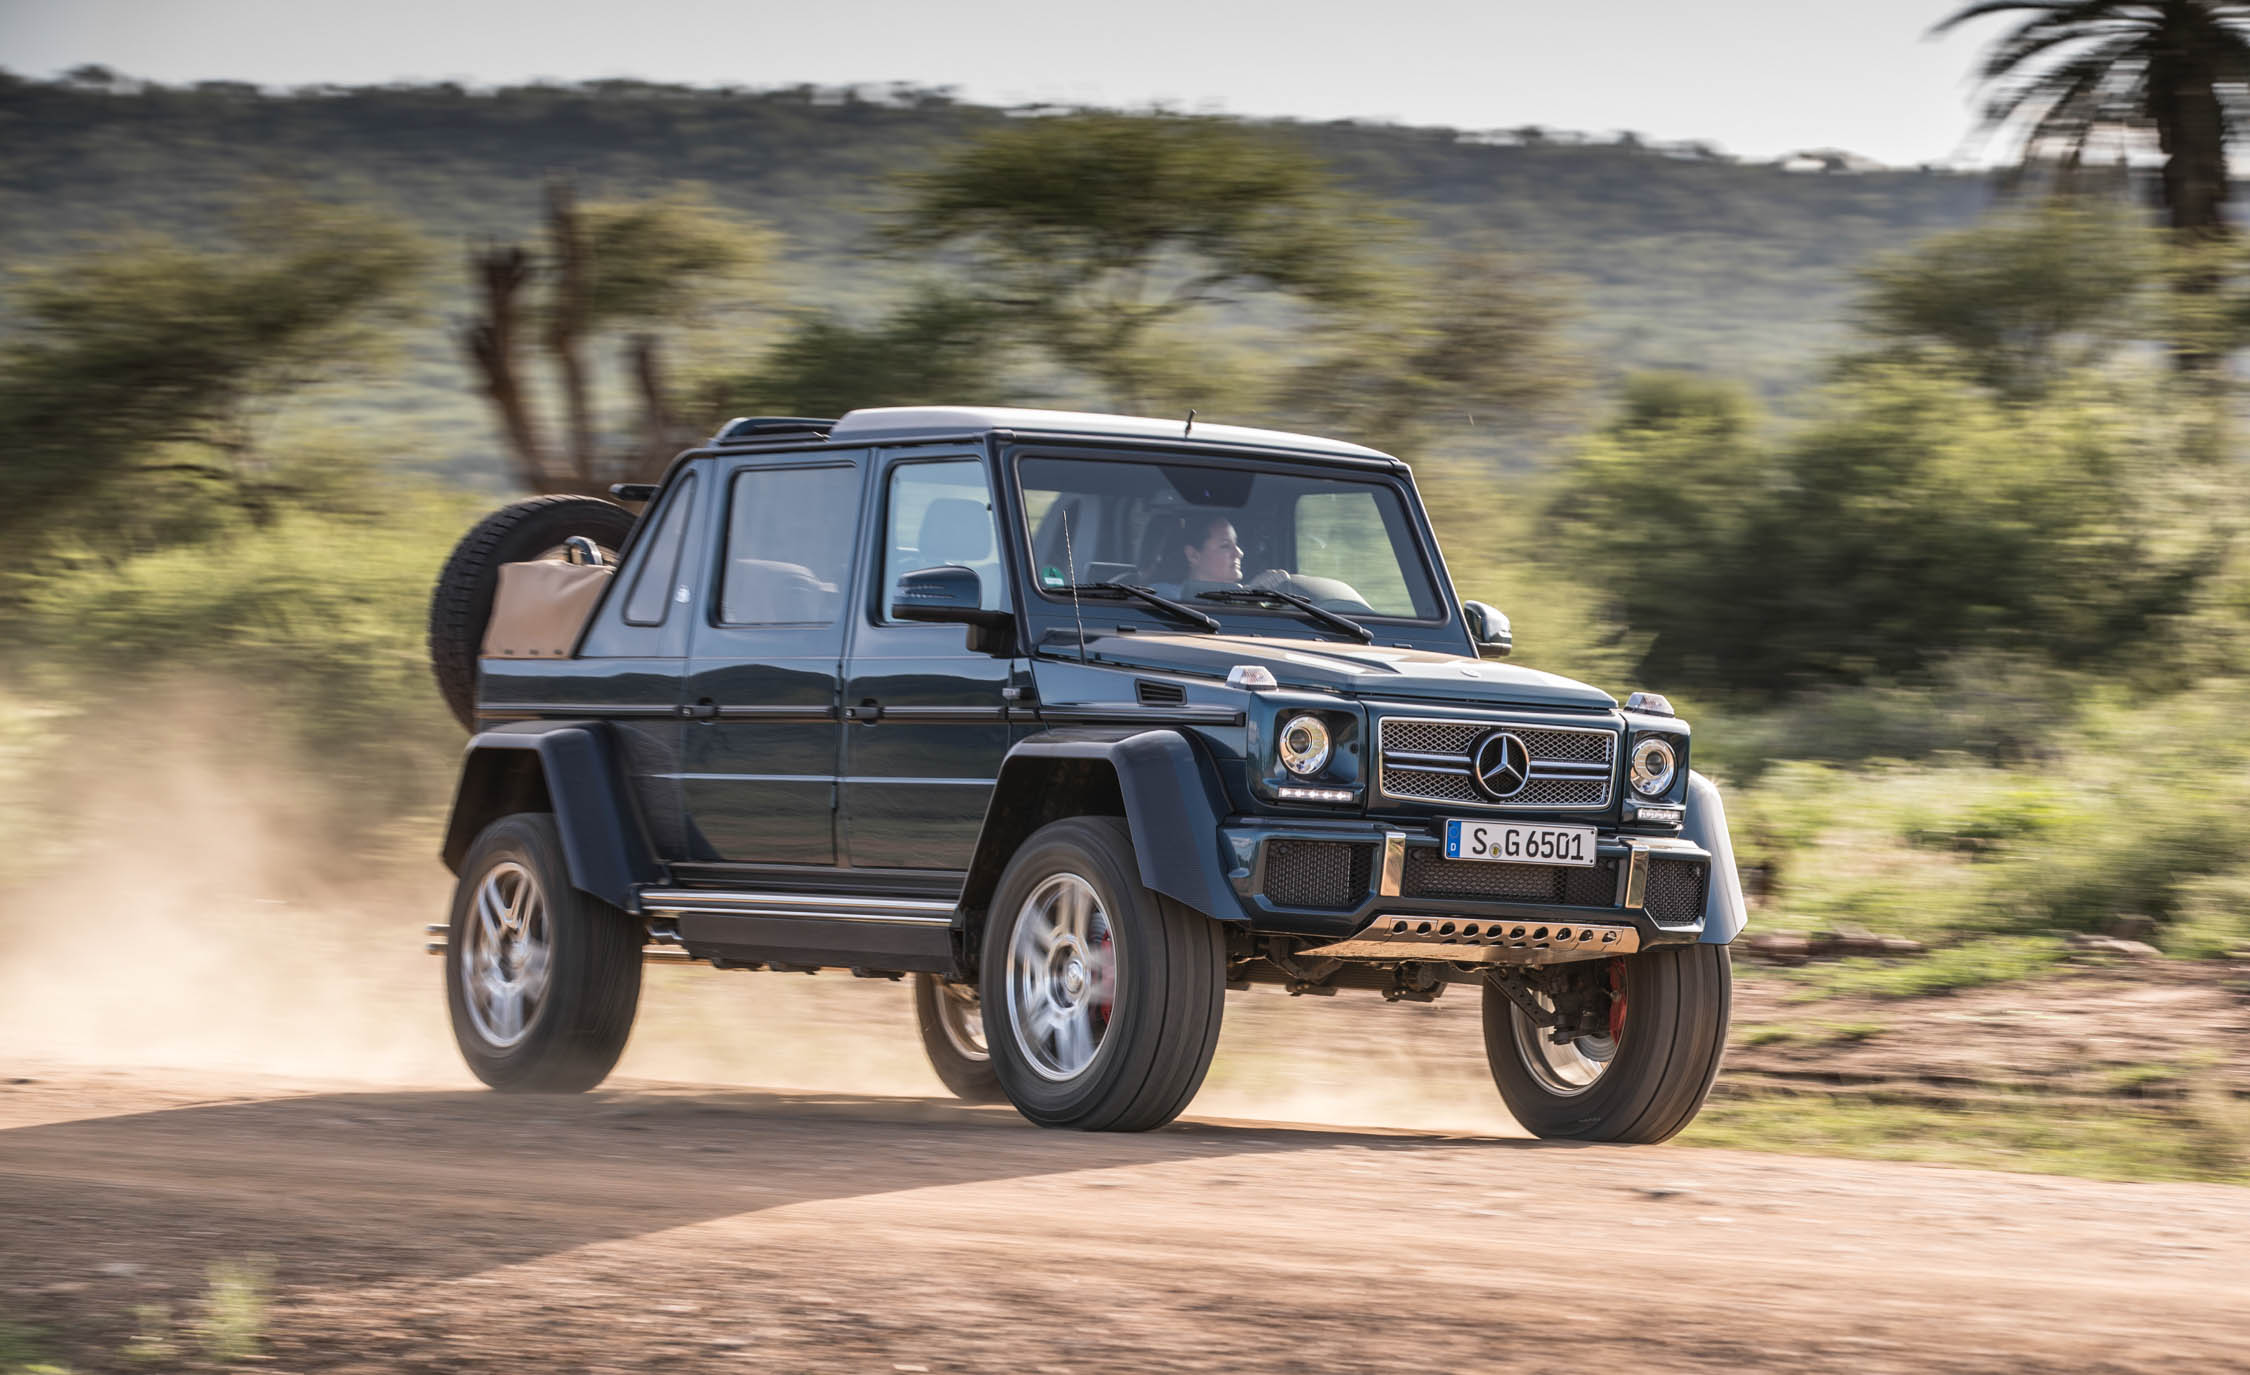 2018 Mercedes Maybach G650 Landaulet Test Drive Preview (Photo 40 of 52)